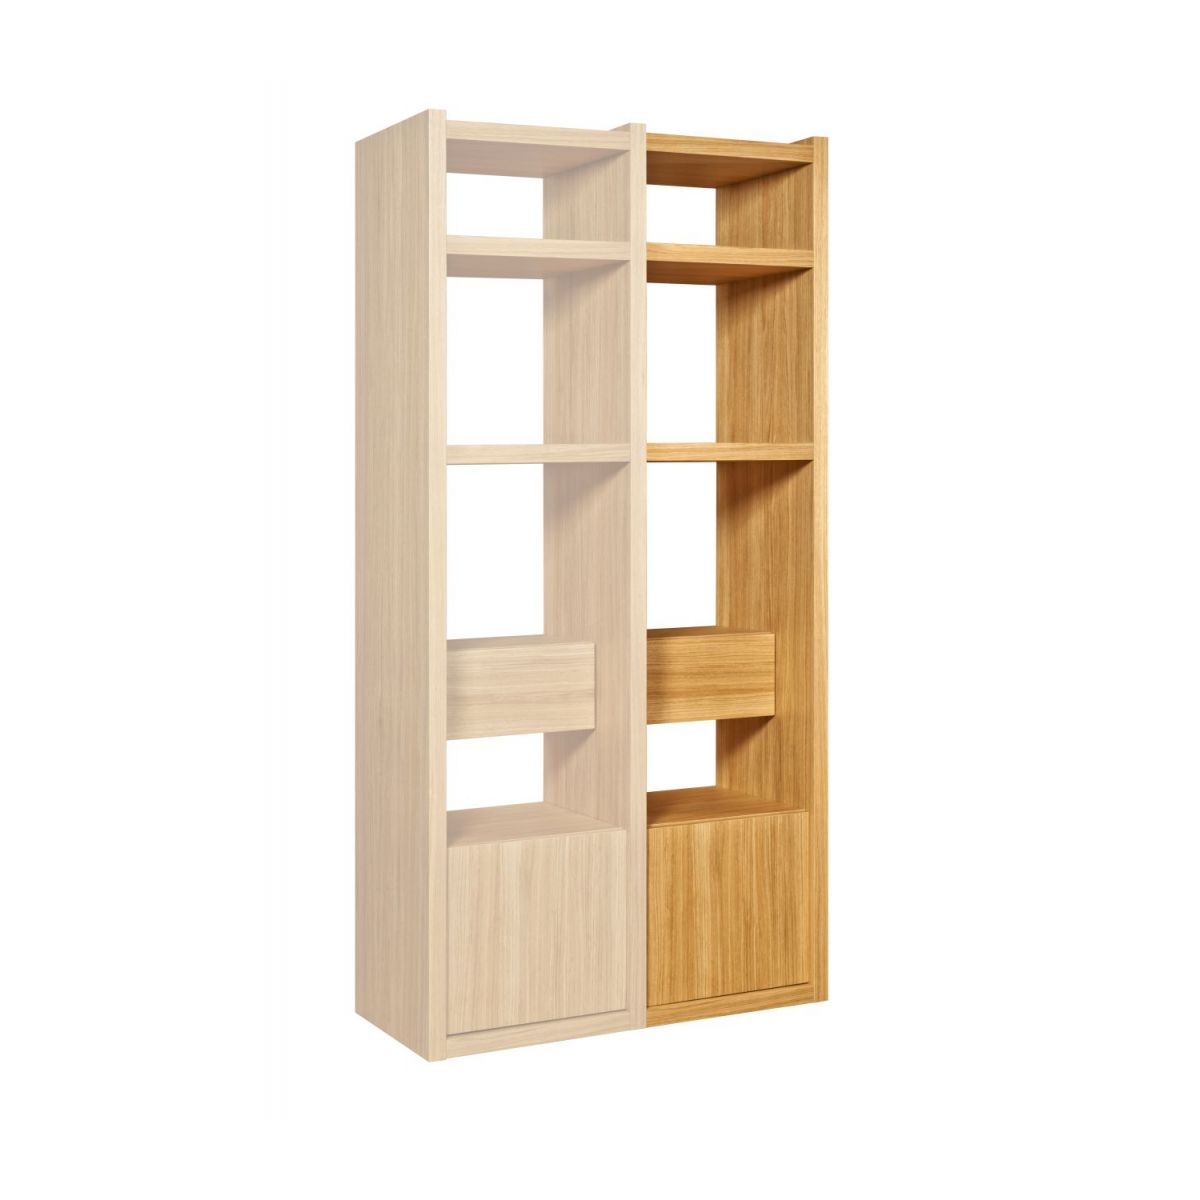 Extension for small oak shelving unit n°1